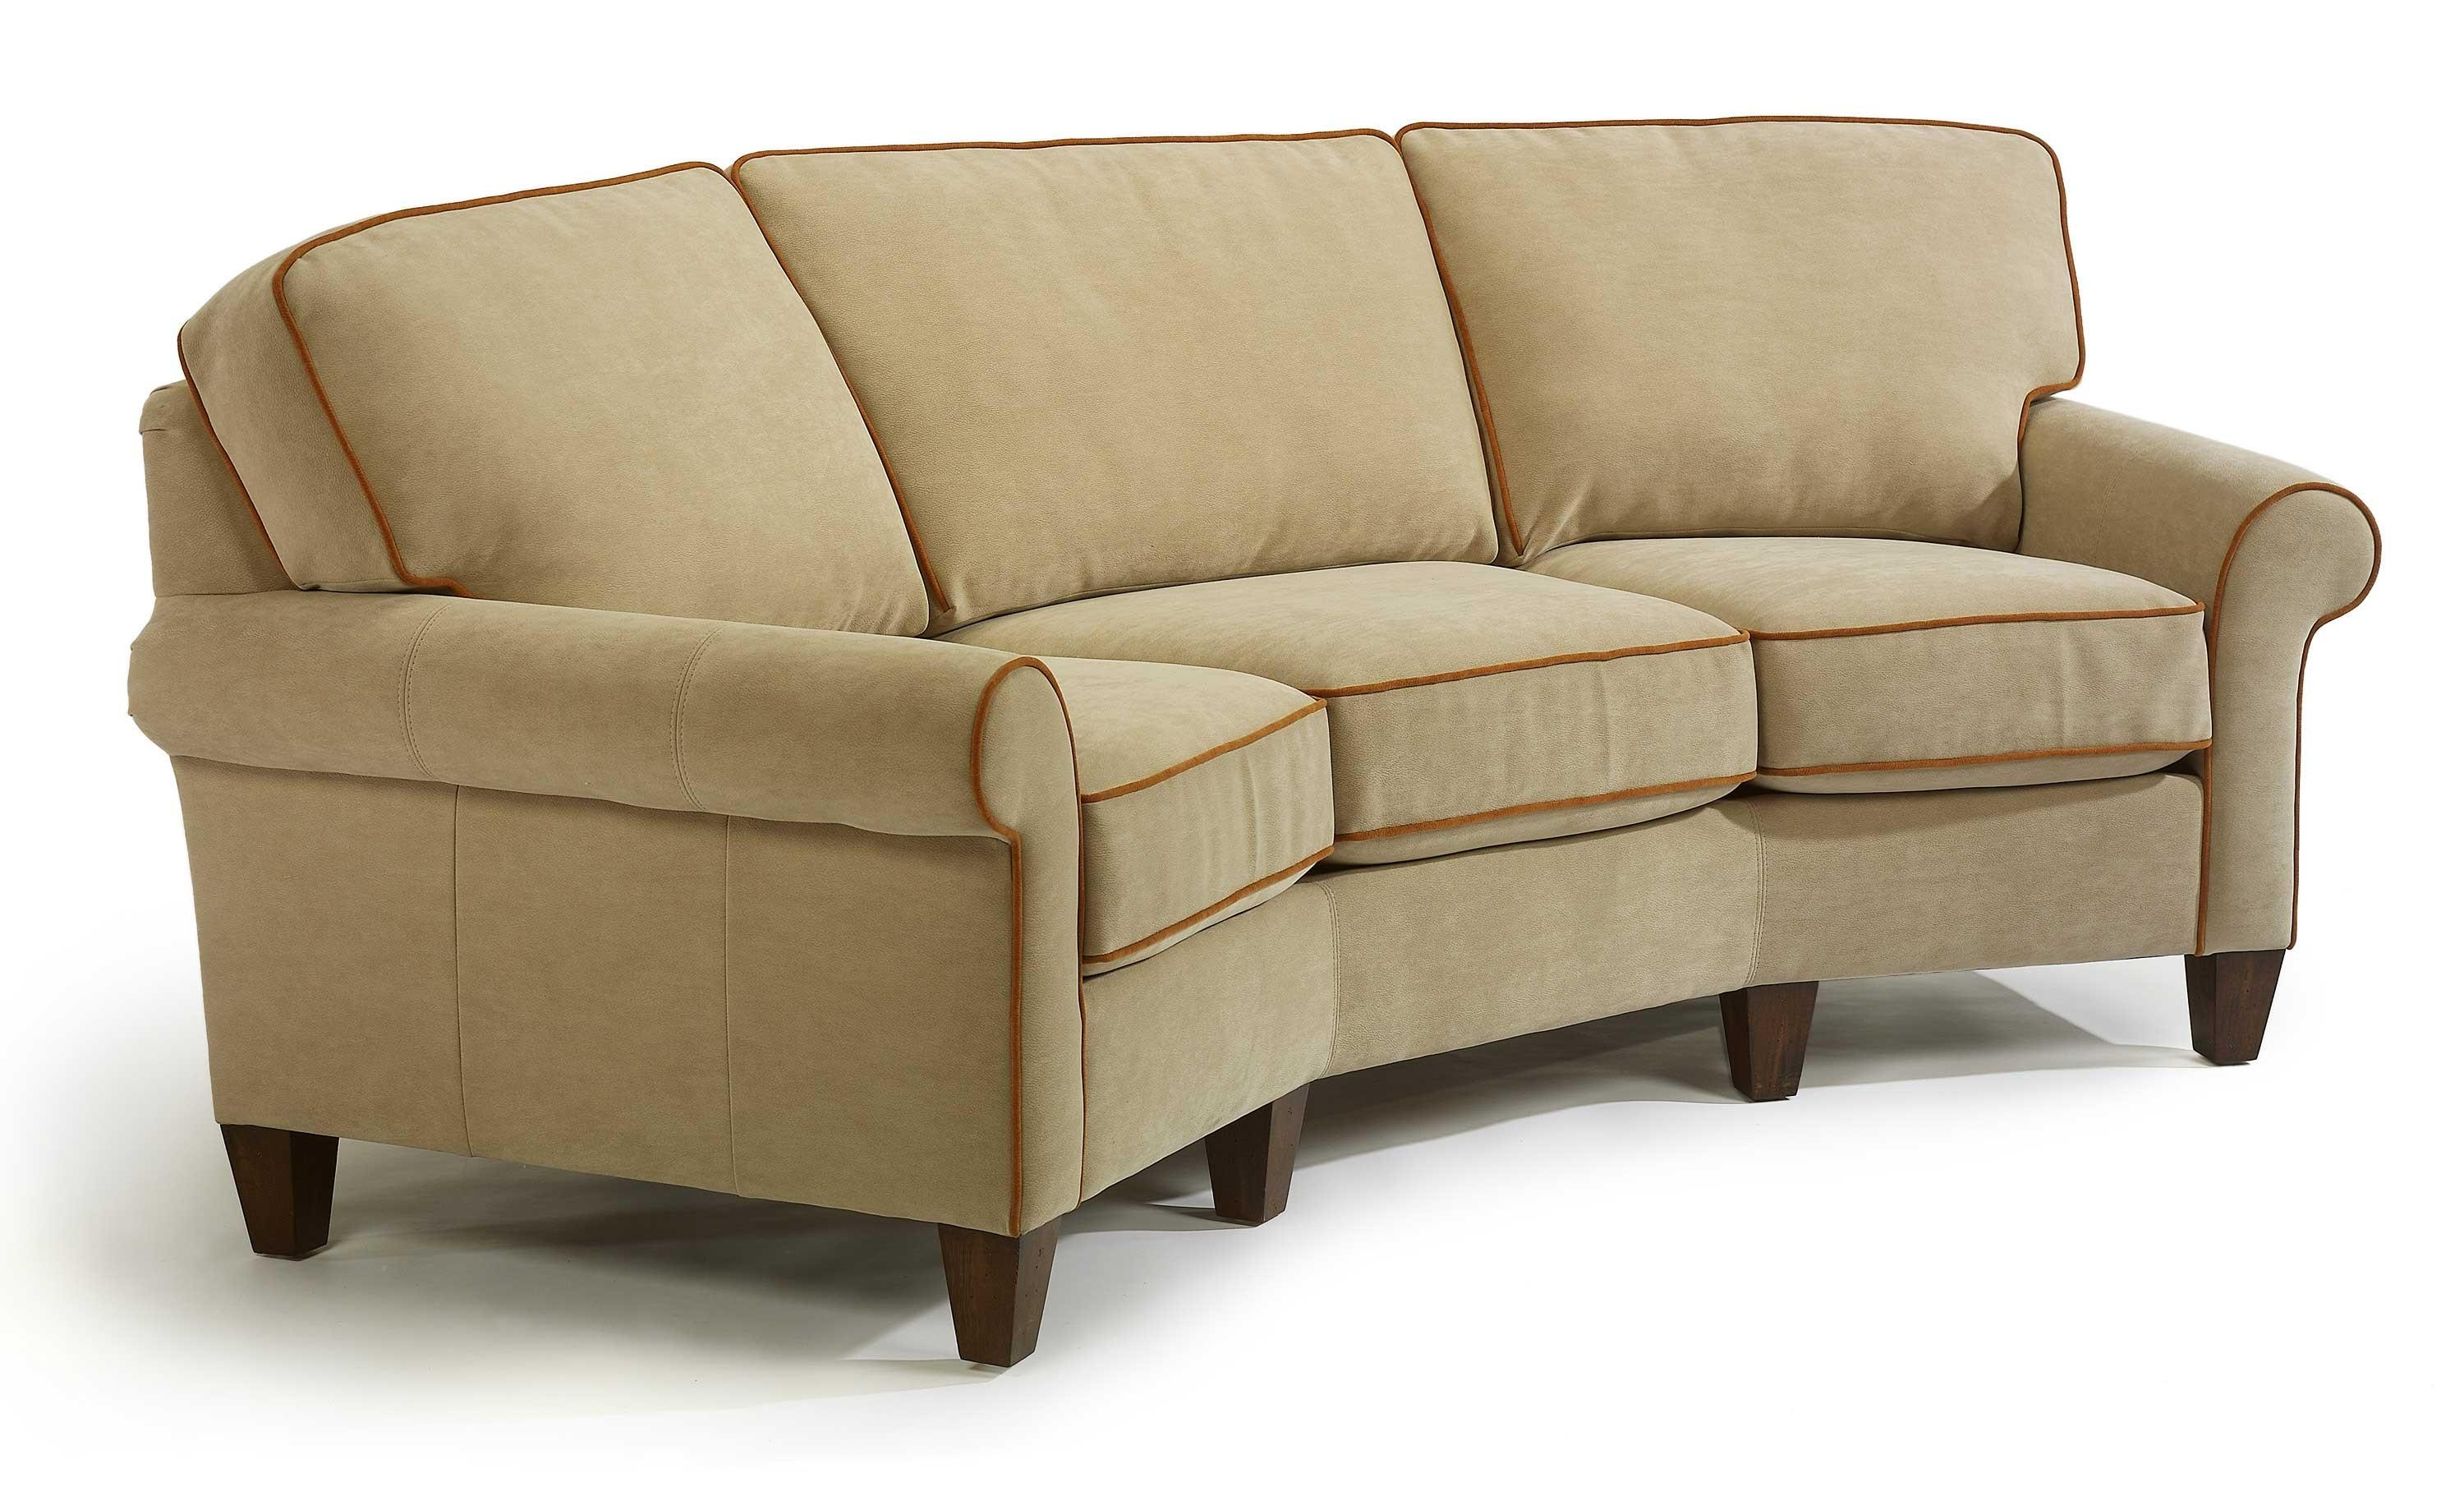 Jasen's Furniture Your Flexsteel Dealers In Michigan Throughout Sofa Chairs (Image 10 of 20)